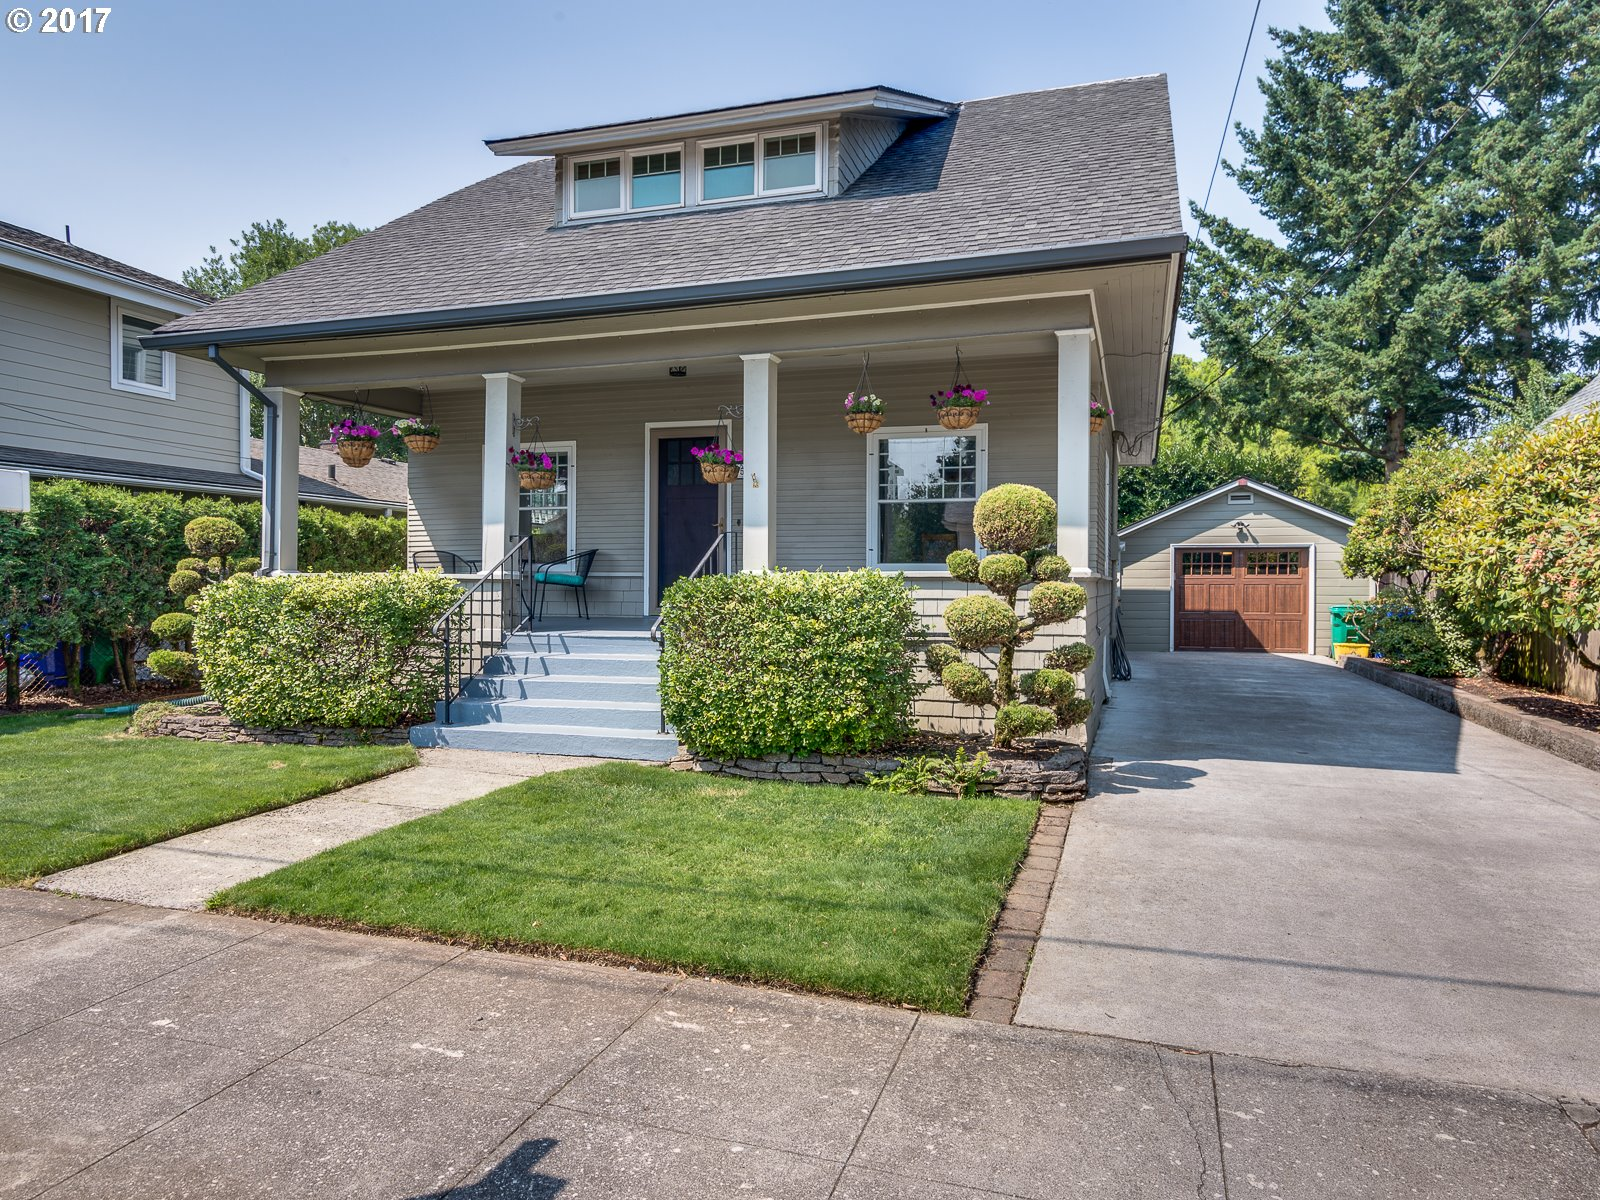 Close-in Classic Craftsman in desirable Overlook neighborhood. This lovingly maintained home being sold first time in 33 years! You'll love the original charm, period details,front porch,hi ceilings,spacious kitchen,forced air gas/AC,fenced backyard & oversized garage.Barbecue on patio w/flower-adorned pergola.Close to MAX,I-5,downtown,Adidas, New Seasons,restaurants,parks.This well-kept historic charmer is what you've been waiting for!